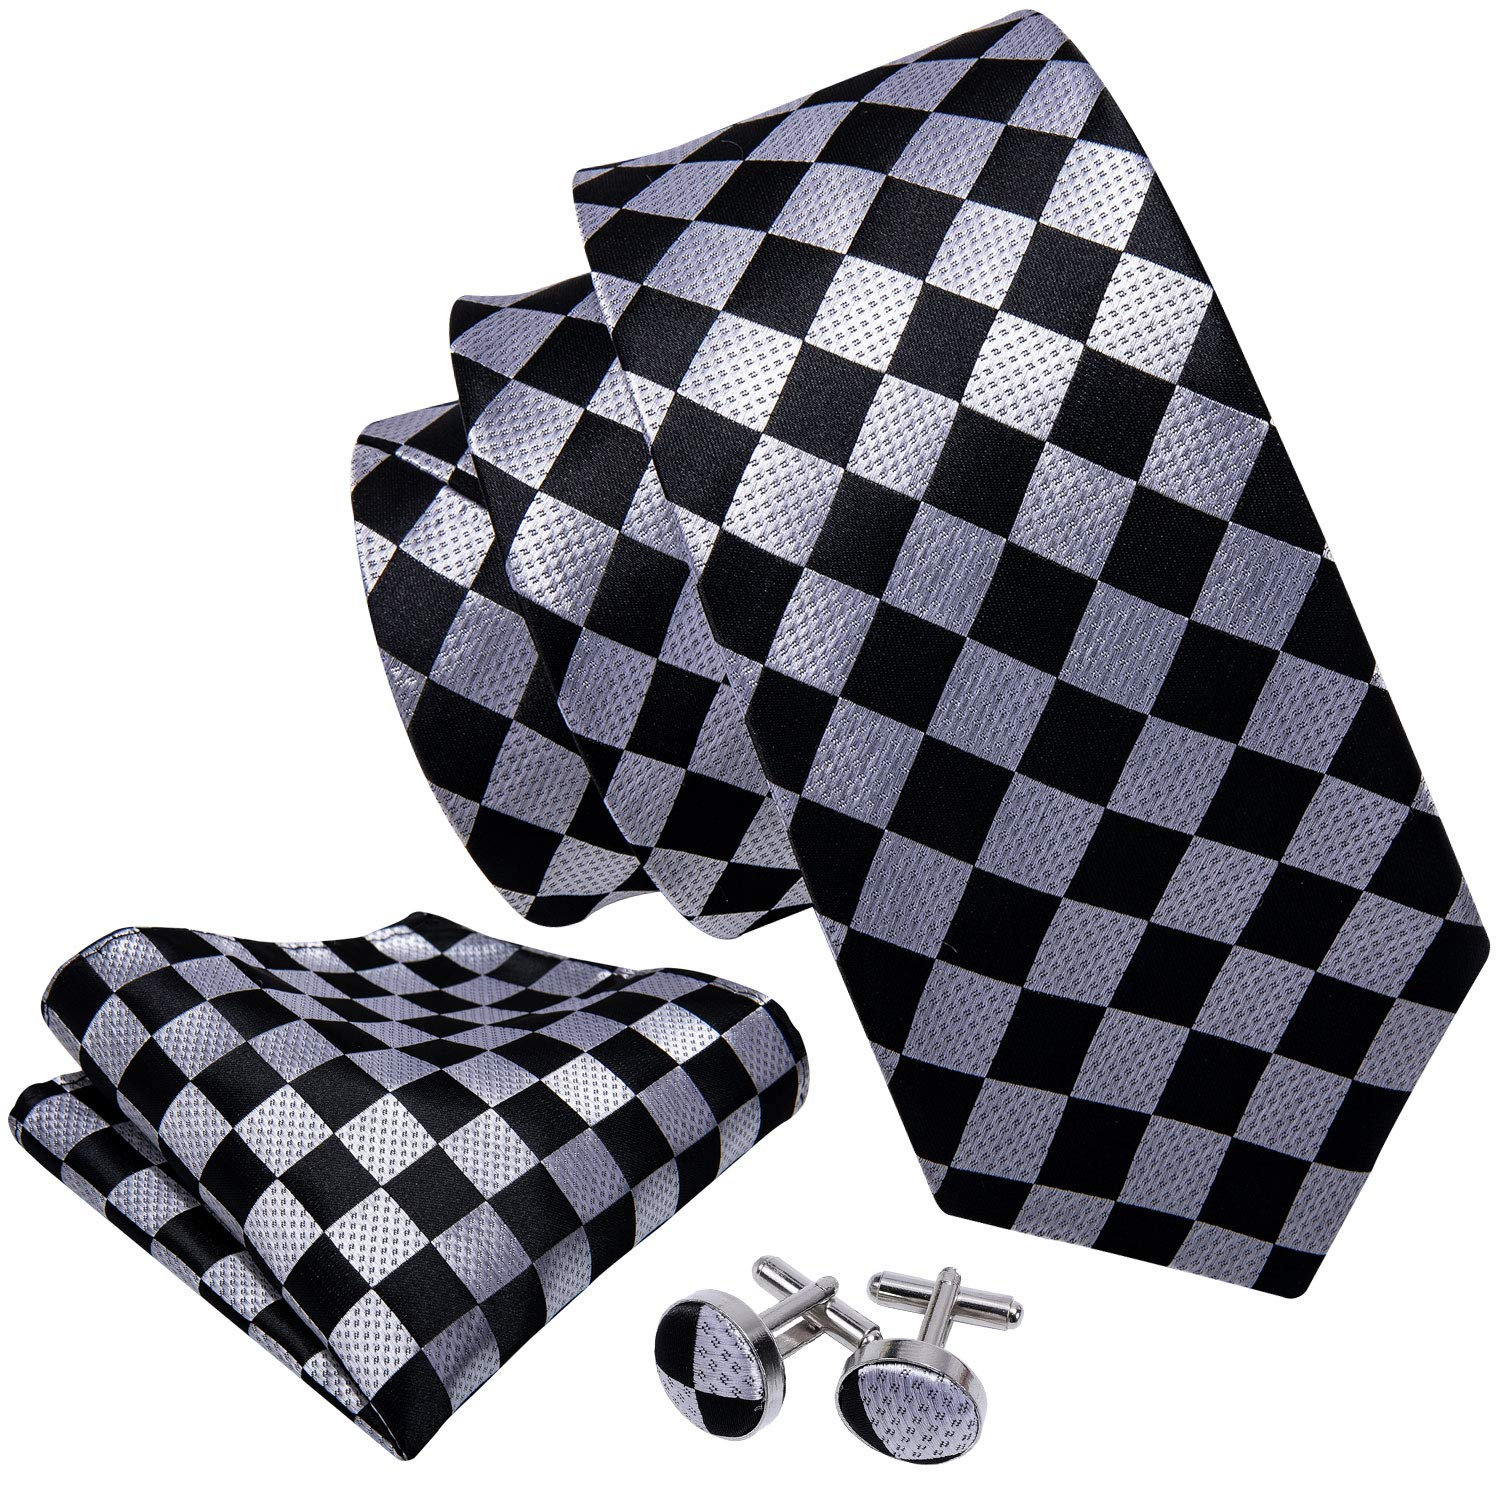 f537208159b2 Wang Mens Ties Set Retro Plaid Necktie with Hanky Cufflinks Formal product  image